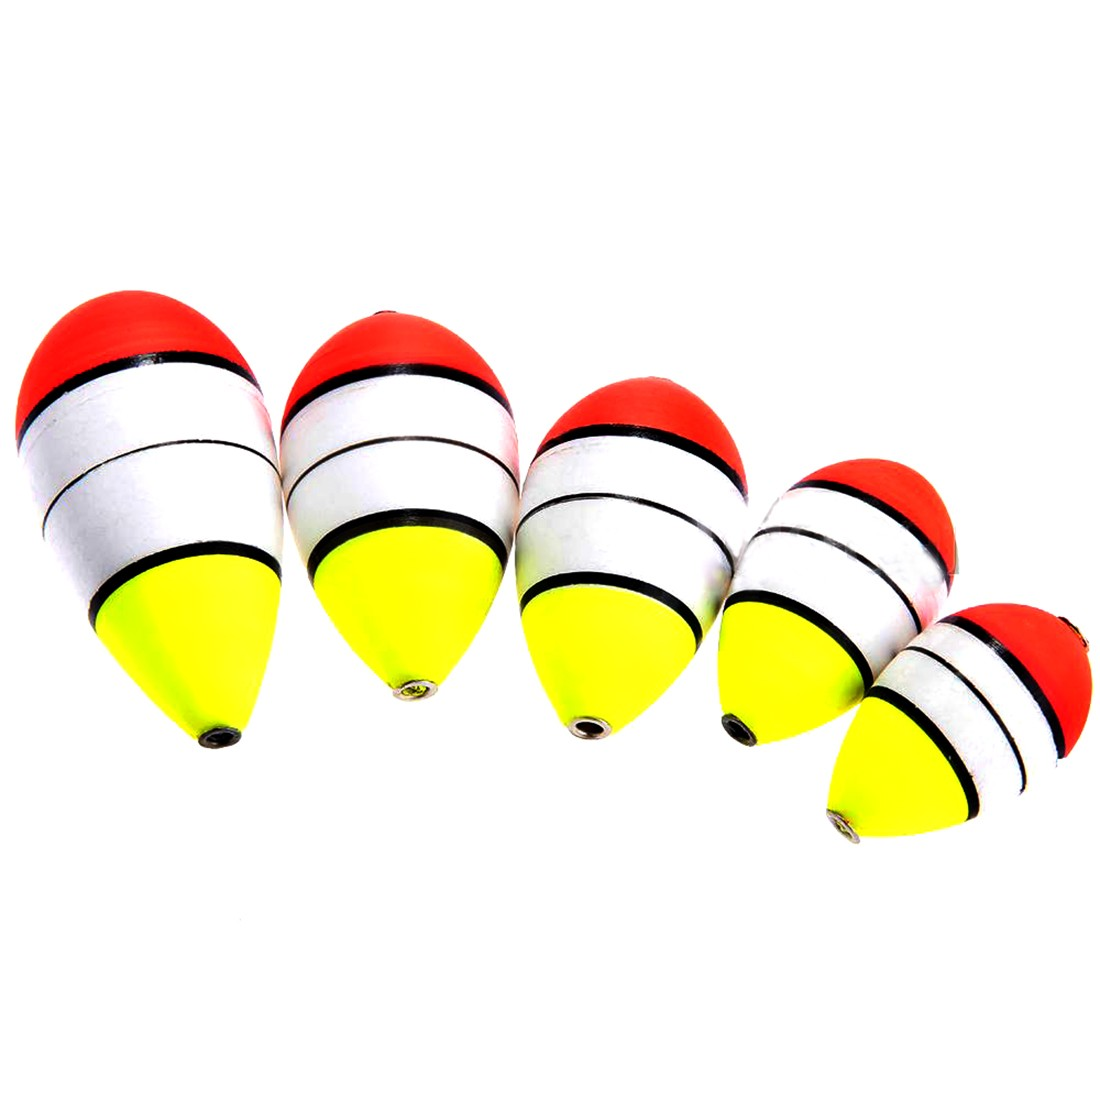 2016 hot sale high quality 5pcs foam fishing floats for Fishing bobbers for sale